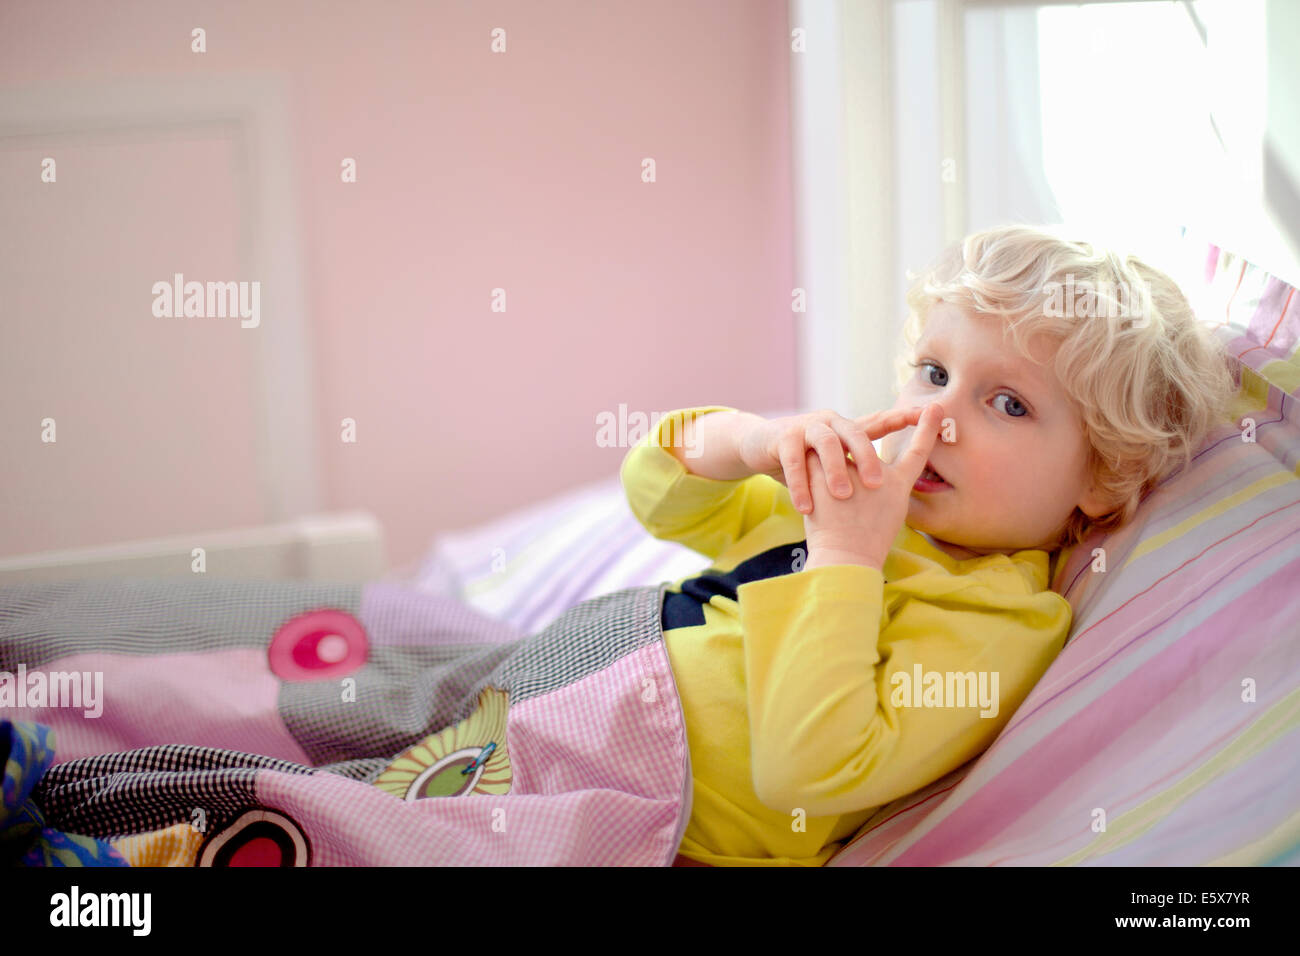 Male toddler lying in bed making secret hand gesture sign - Stock Image